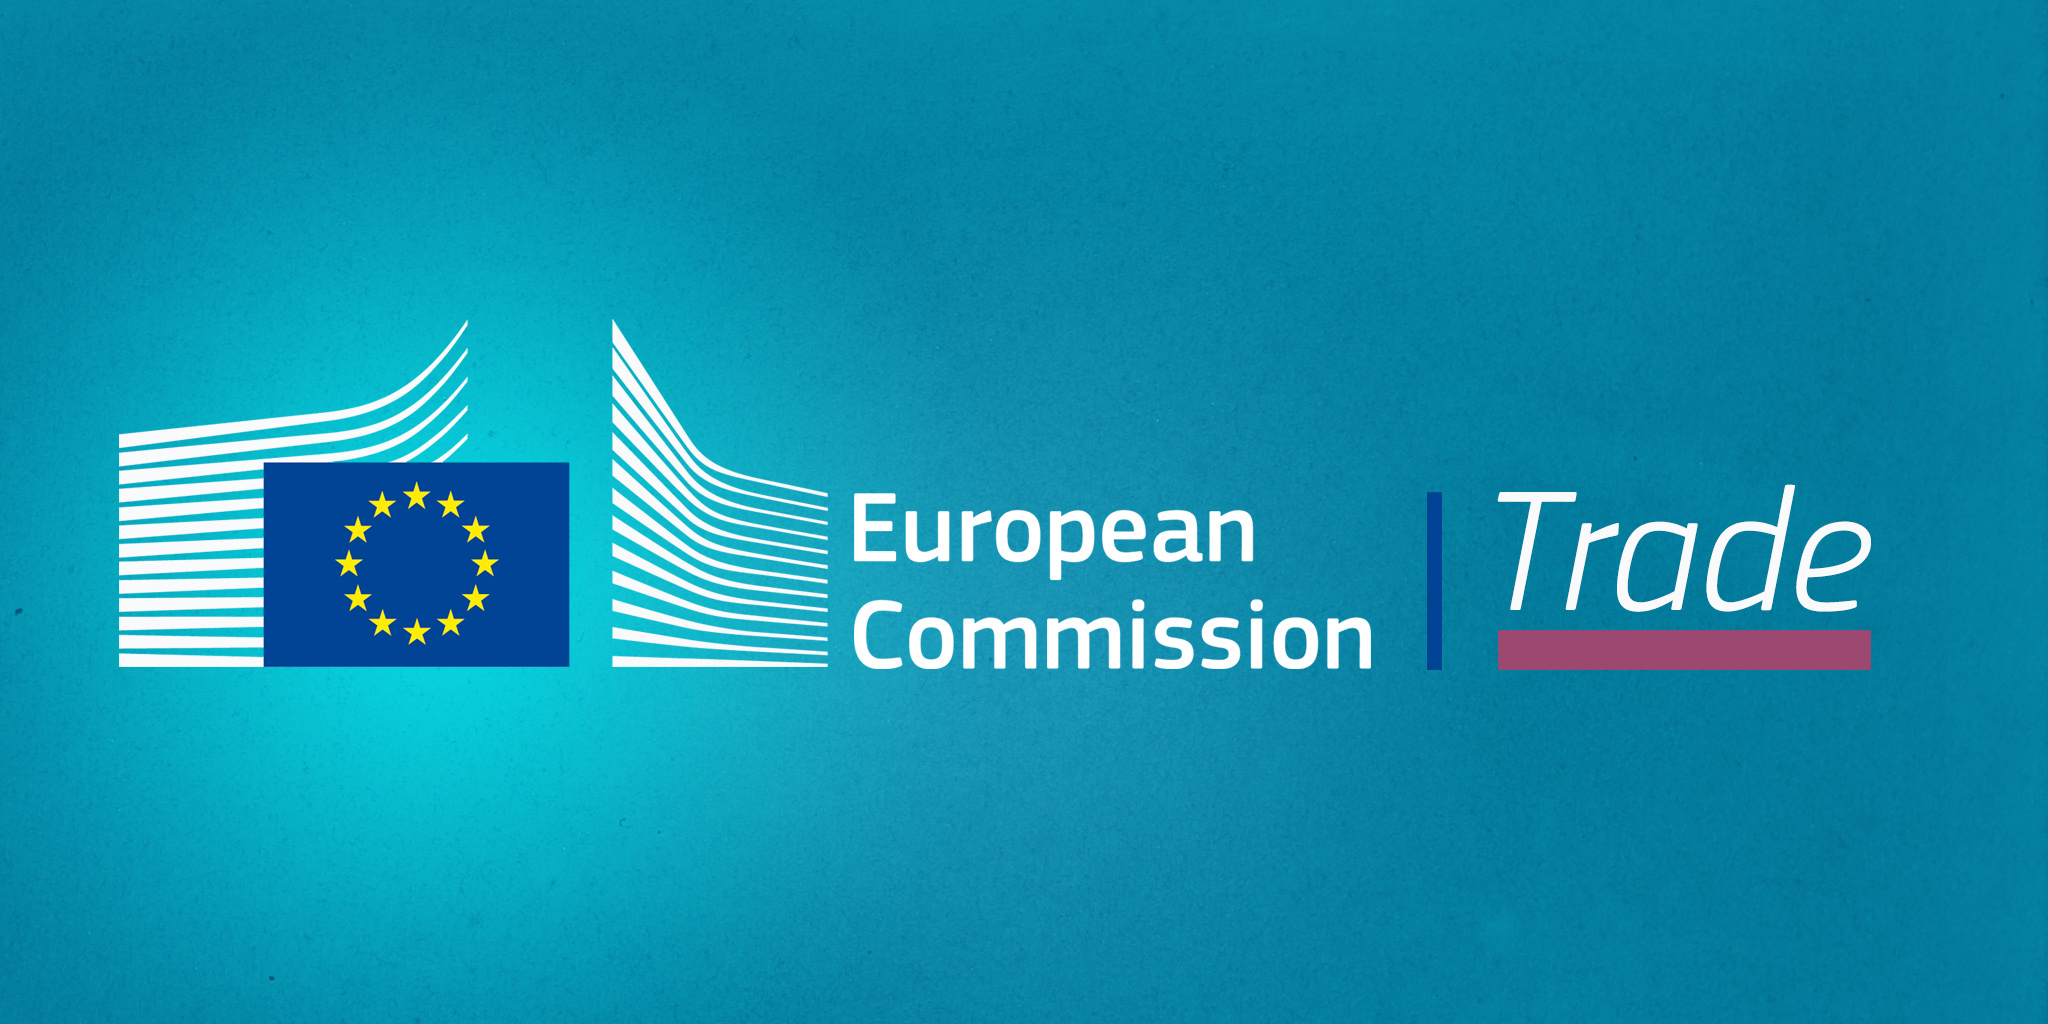 Commission extends transparency and authorisation mechanism for exports of COVID-19 vaccines